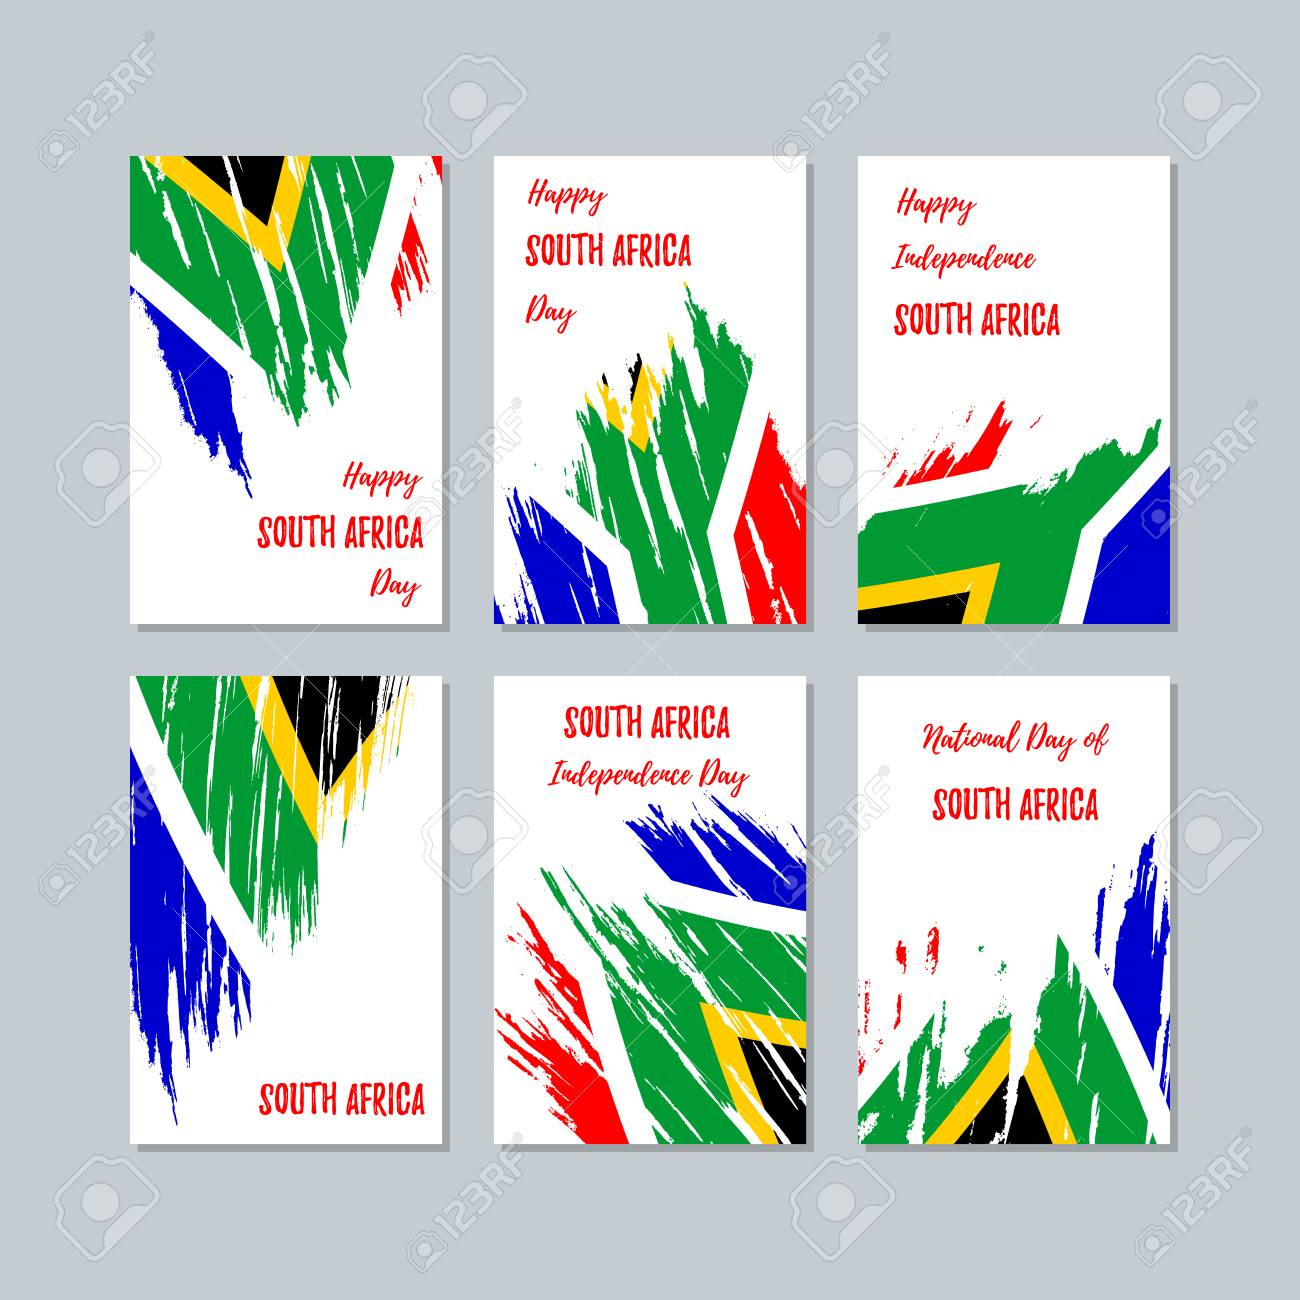 South Africa Patriotic Cards For National Day Expressive Brush